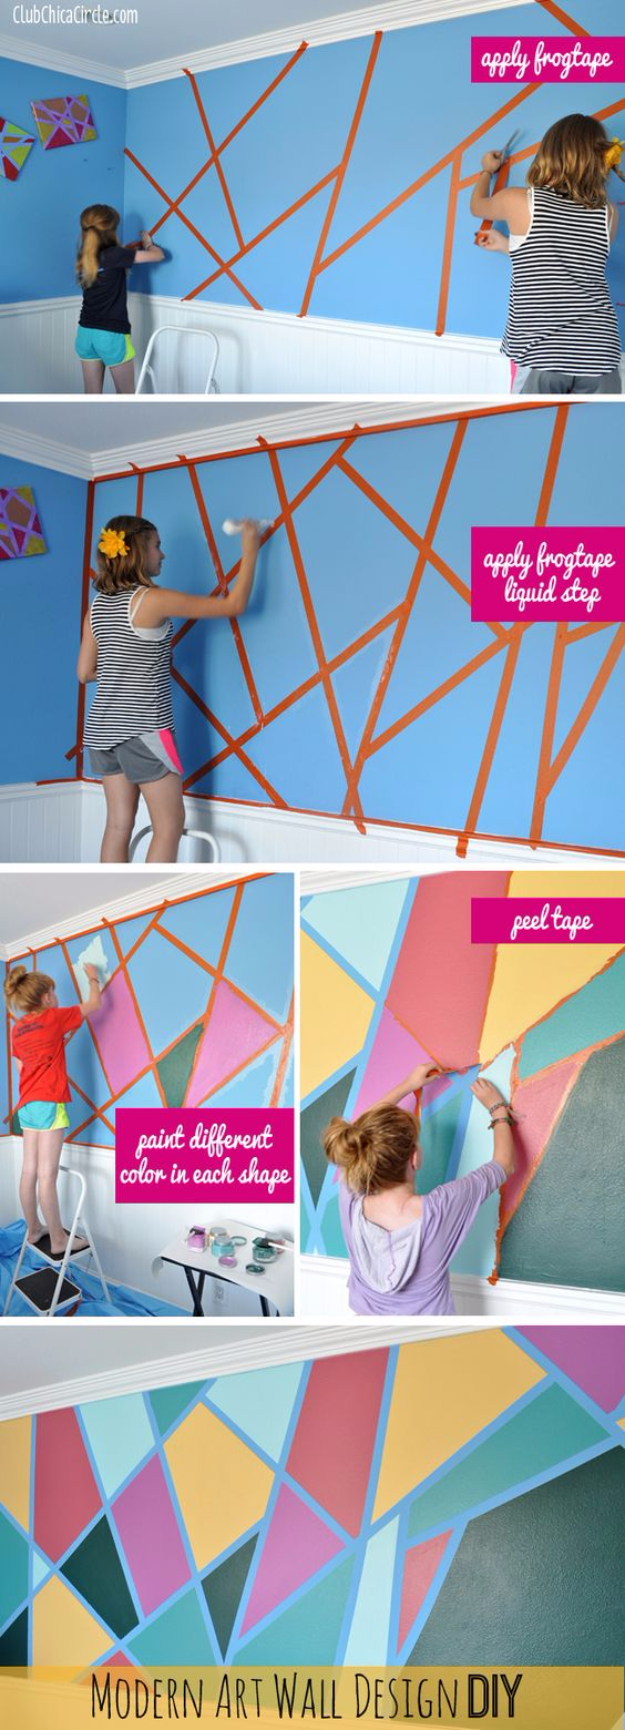 DIY Ideas for Painting Walls - DYI Modern Art Wall Design DIY - Cool Ways To Paint Walls - Techniques, Tips, Stencils, Tutorials, Fun Colors and Creative Designs for Living Room, Bedroom, Kids Room, Bathroom and Kitchen #homeimprovement #diydecor #roomideas #teenrooms #walldecor #paintingideas